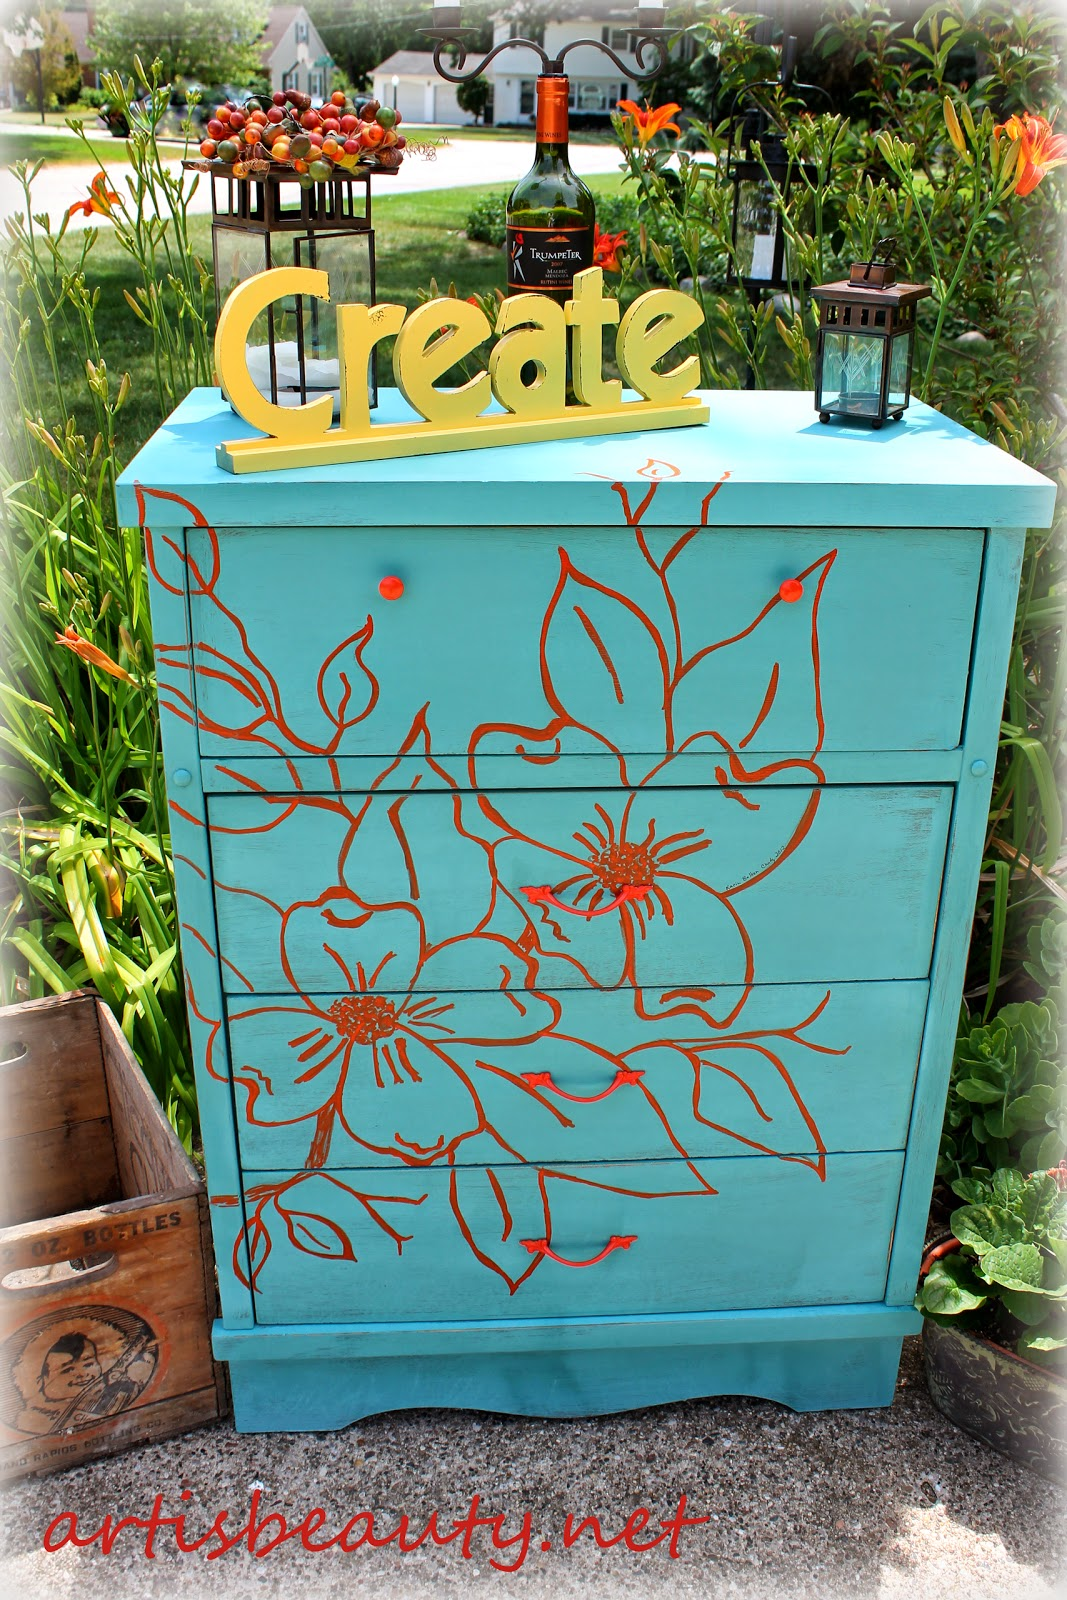 Hand painted artwork dogwood dresser makeover orange and blue compimentary colors diy before and after recycled